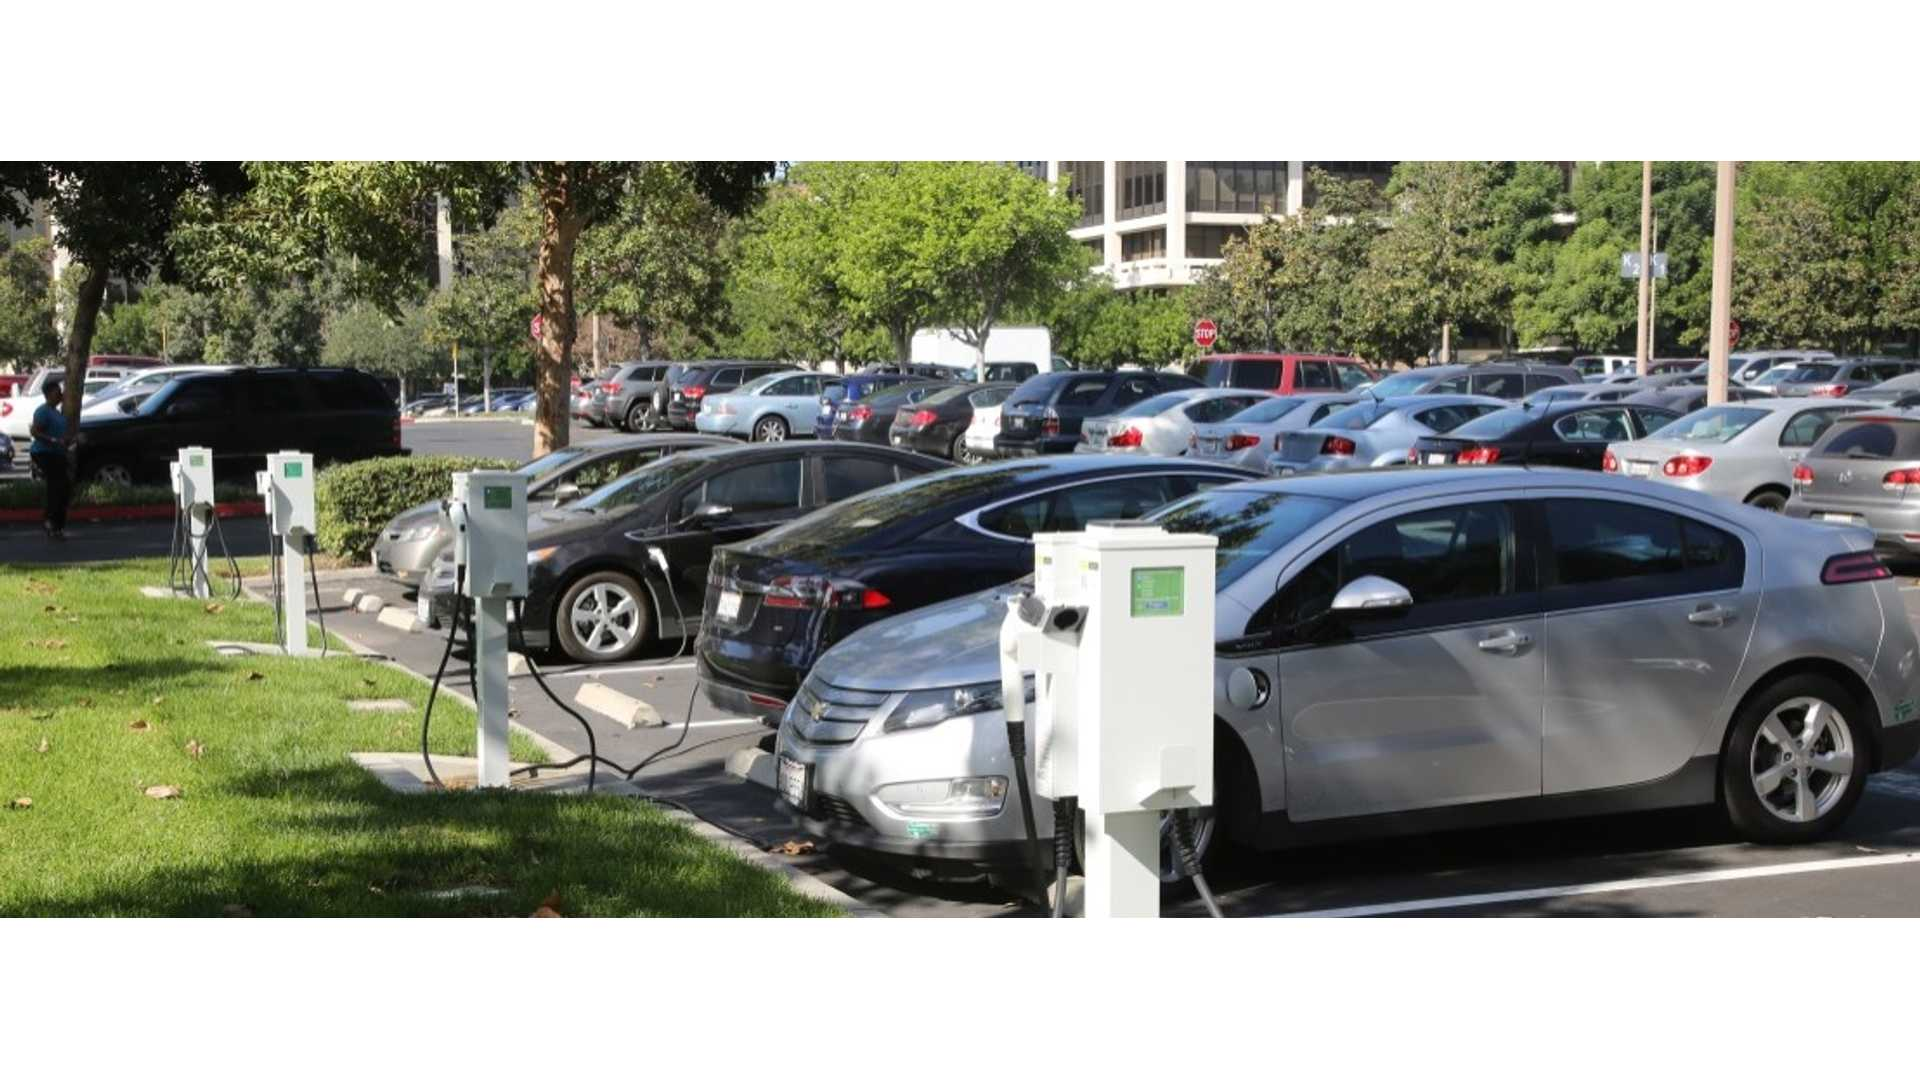 Southern California Edison Sce Launches Charge Ready Electric Vehicle Charging Pilot Program